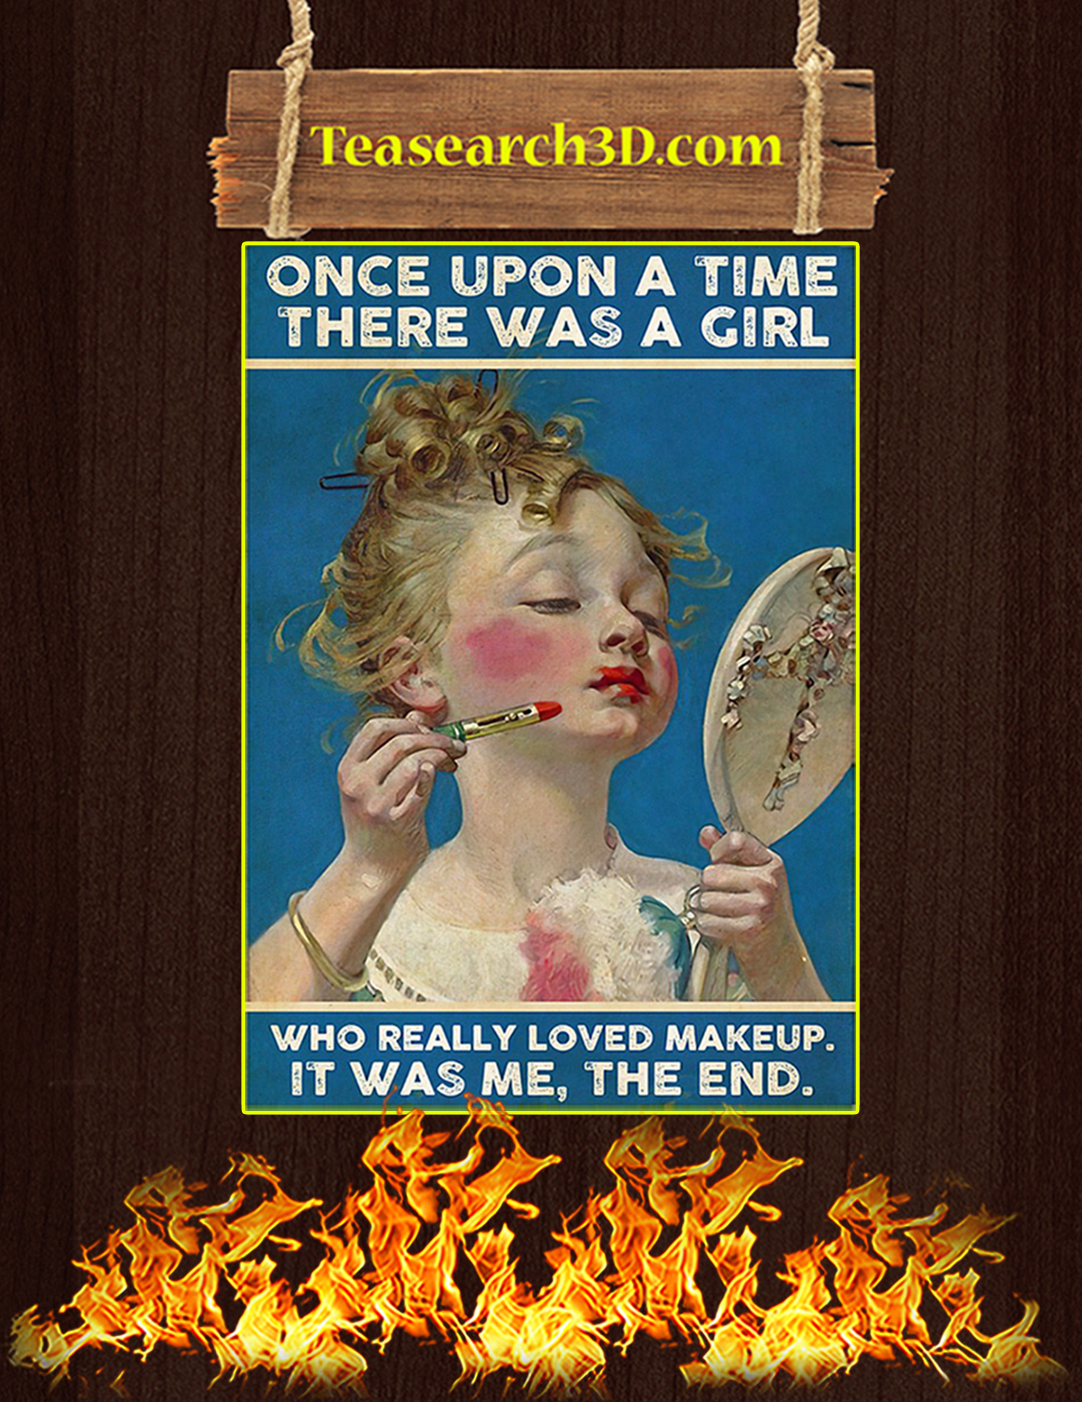 Once upon a time there was a girl who really loved makeup poster A2